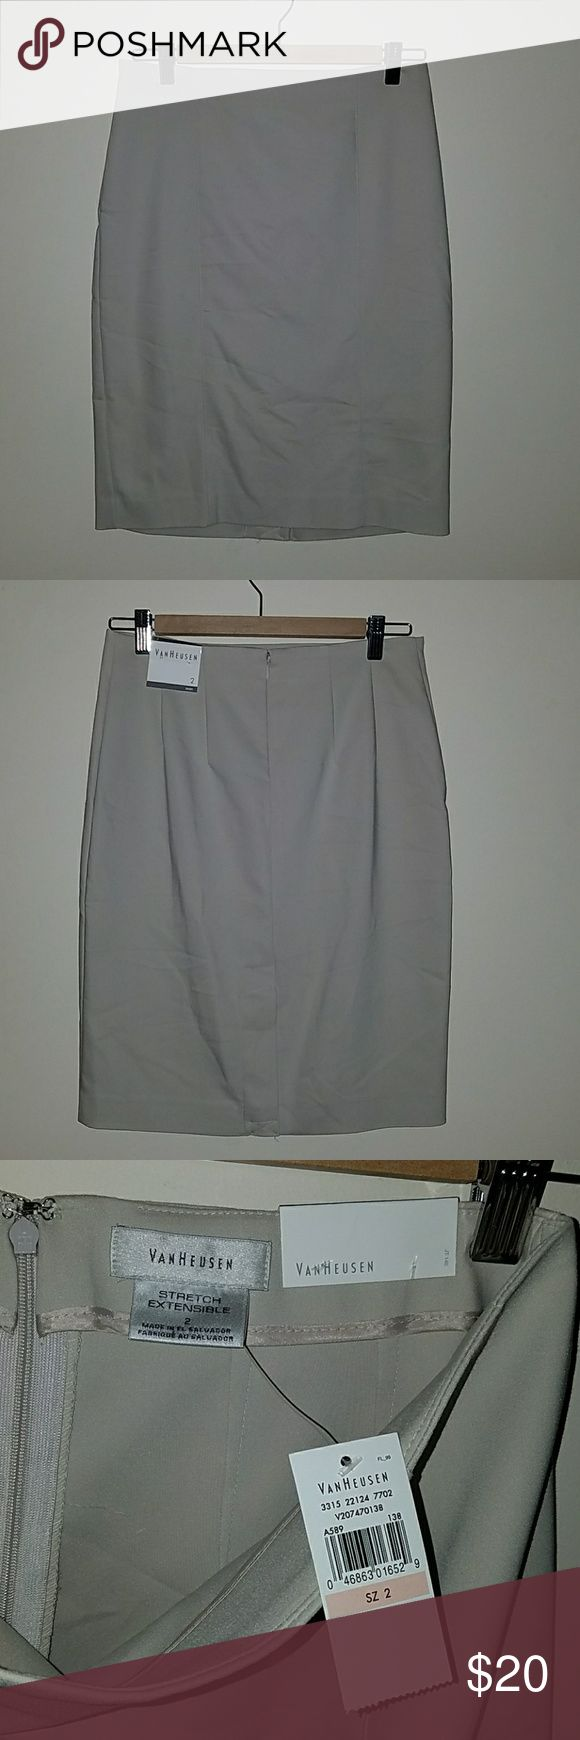 NWT Pencil Skirt Van Heusen khaki pencil skirt - new with tags! Never worn, only tried on. Love my black one I bought but never worn the khaki! Van Heusen Skirts Pencil